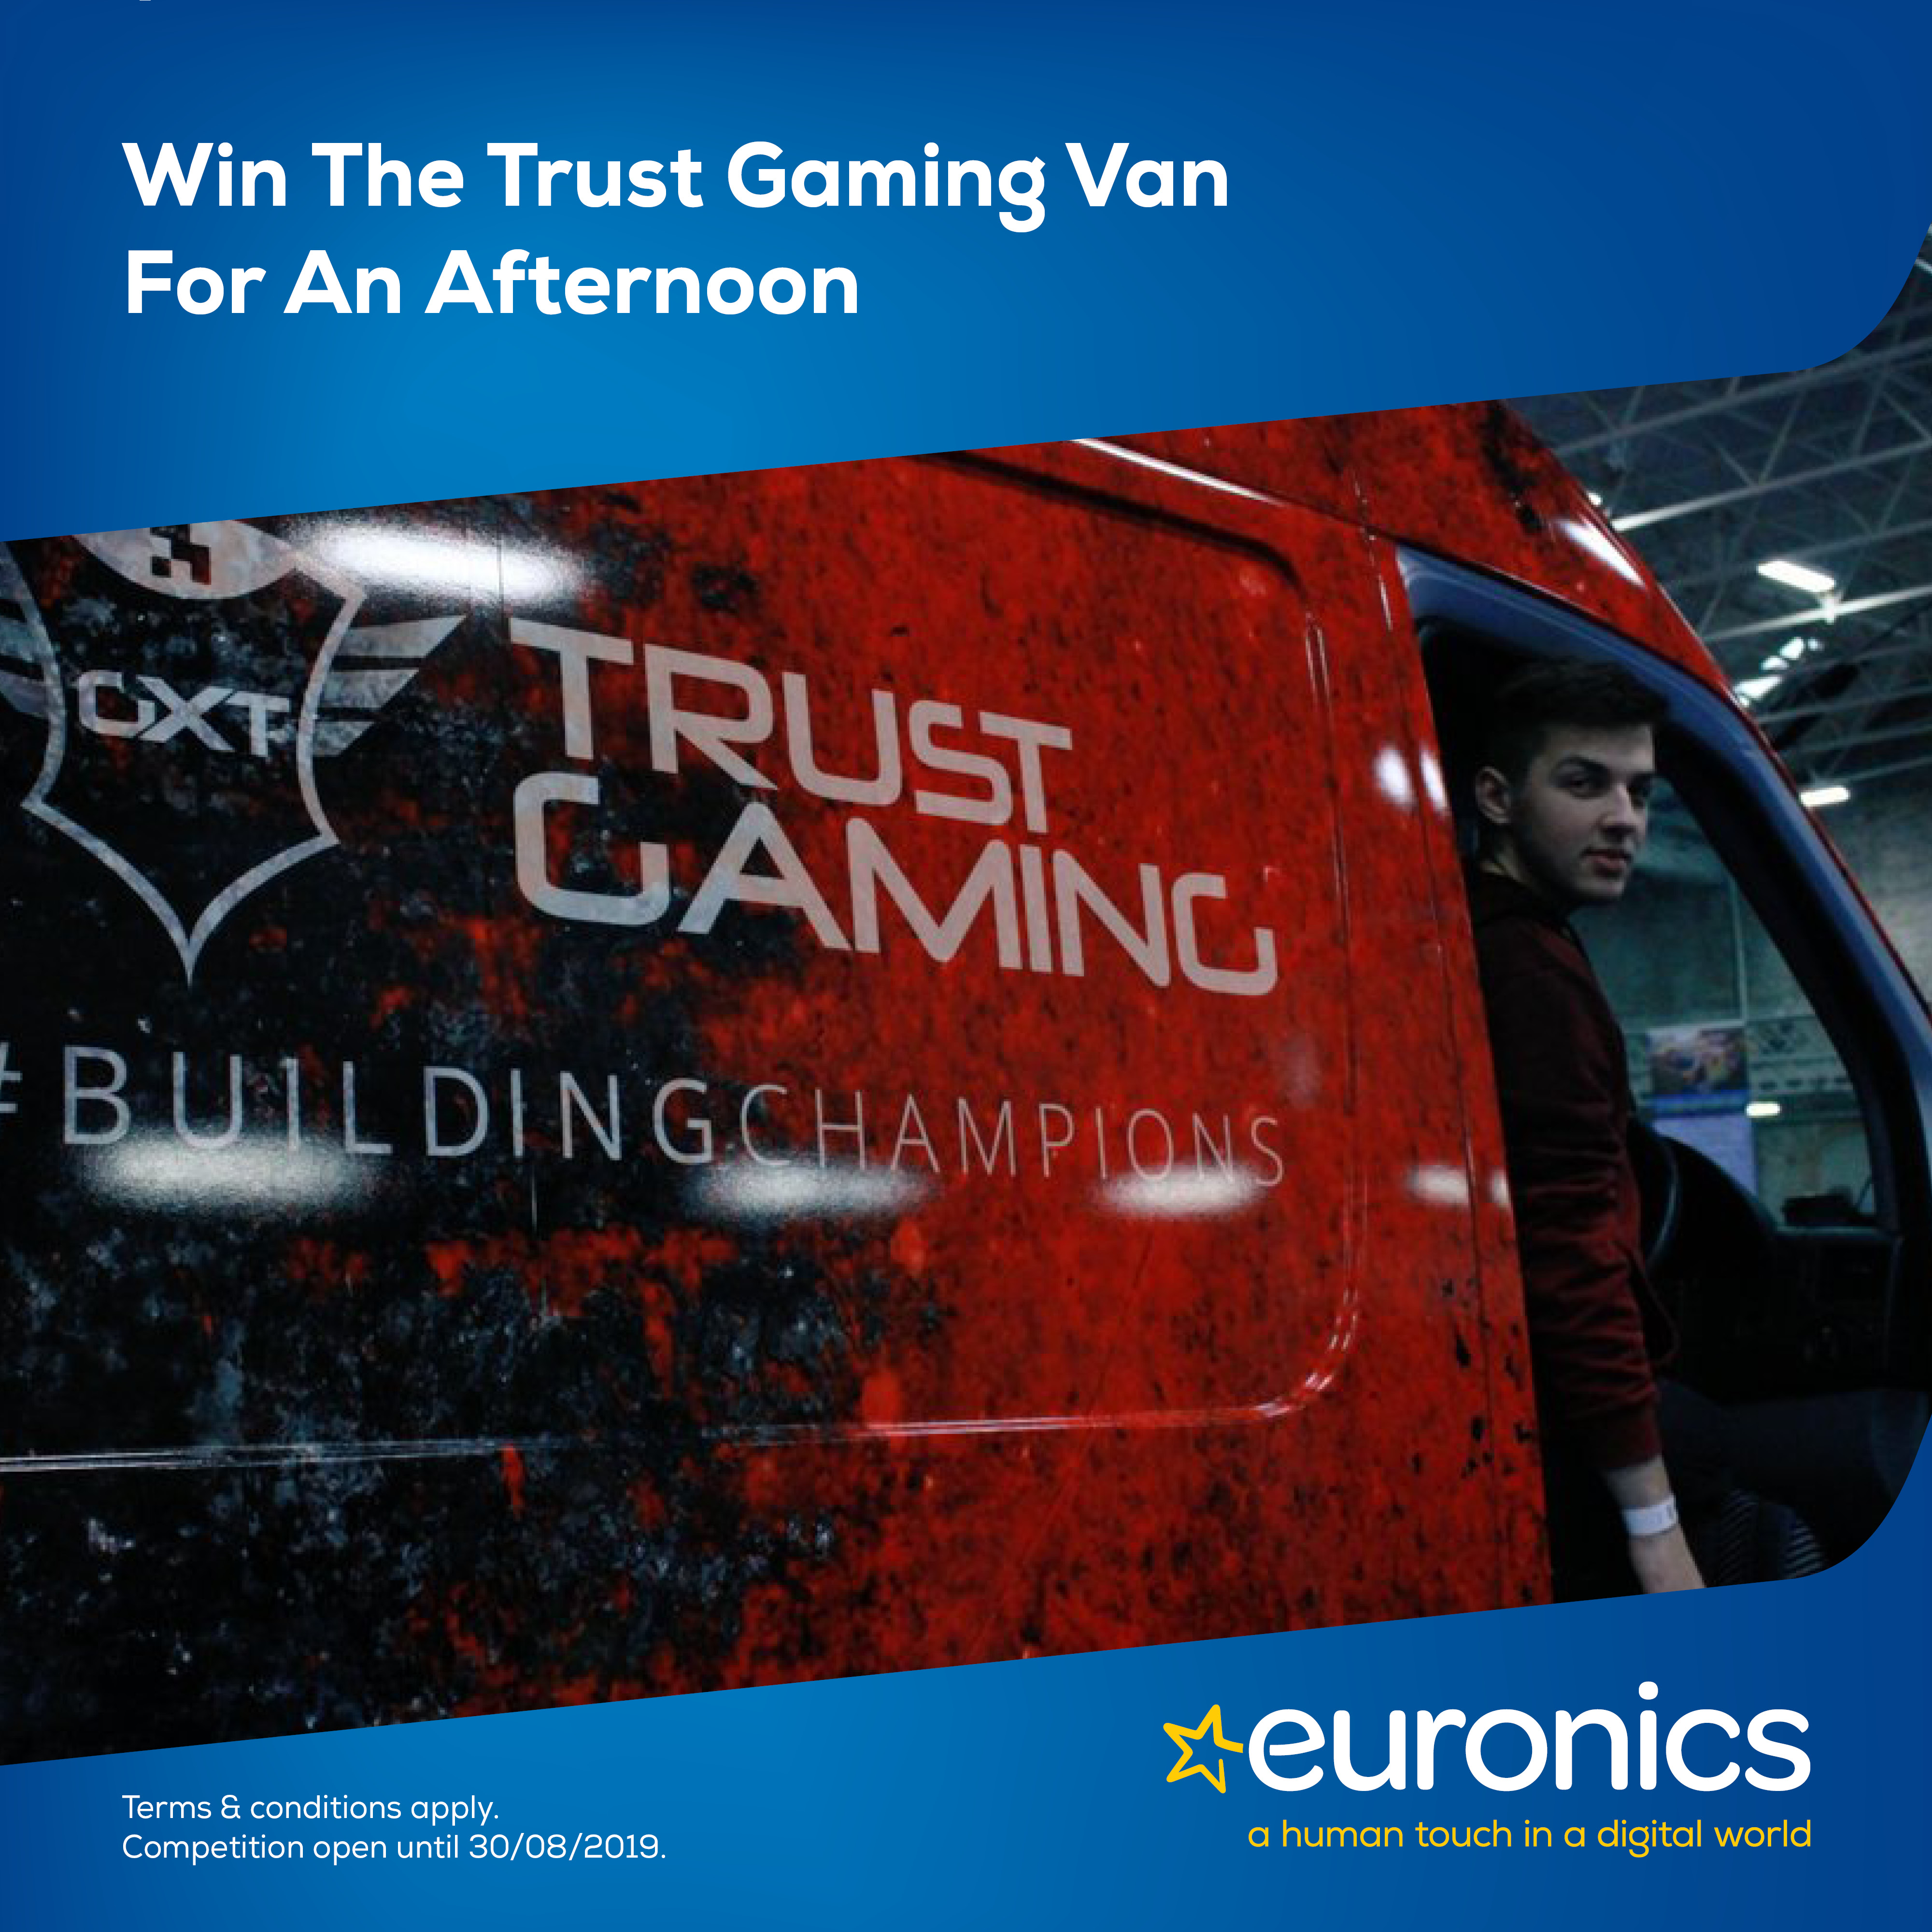 Win a Visit from The Trust Gaming Van